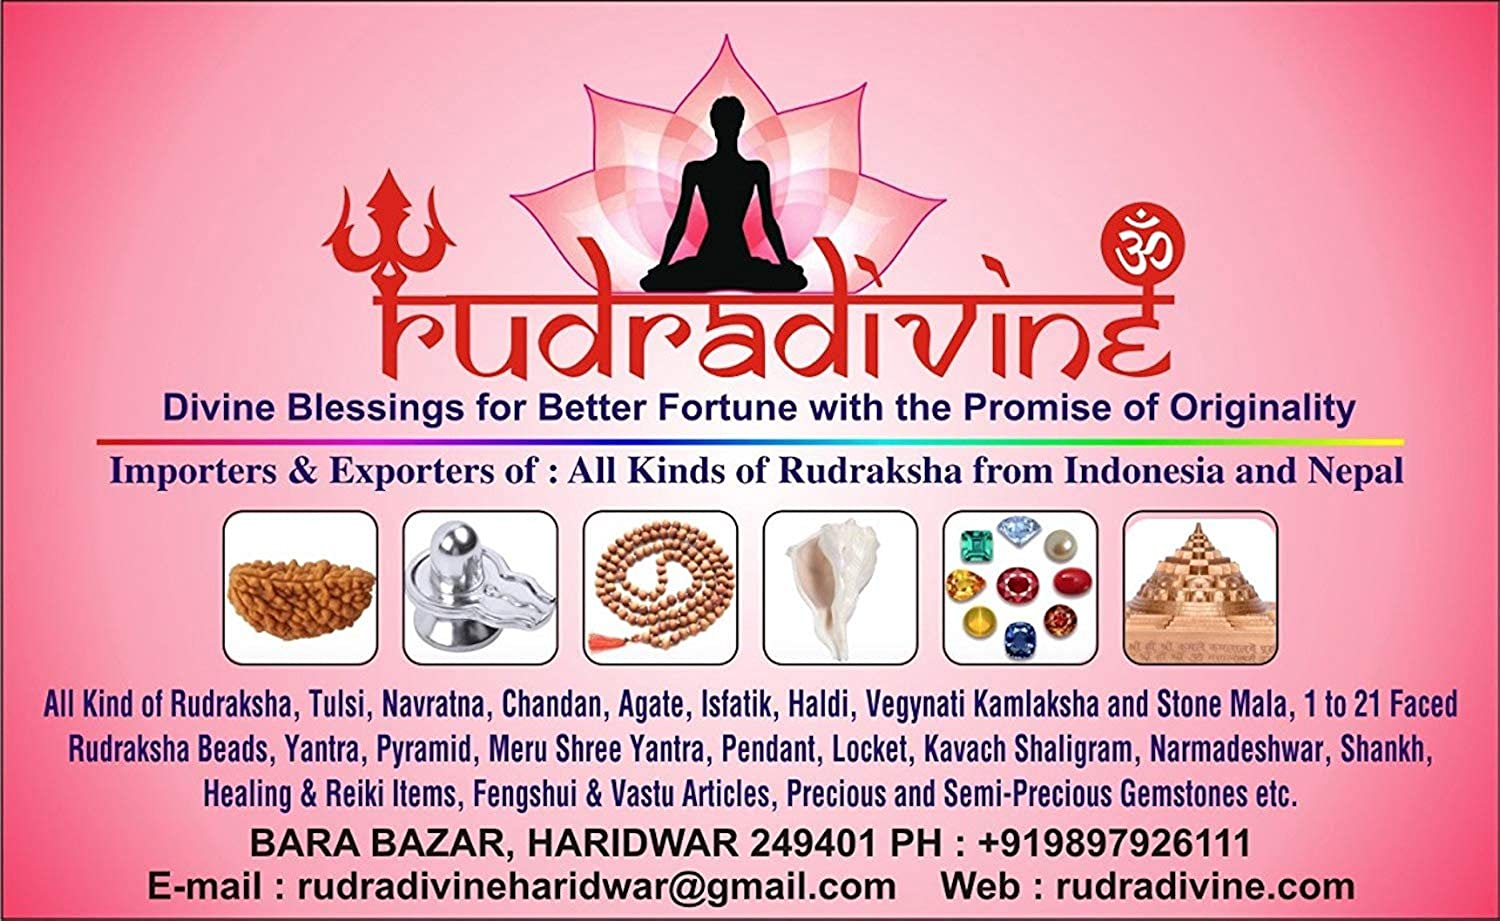 Rudra Divine Pendant in 925 Sterling Silver Ganesh Ji Silver Charm Best Gift for Dhanteras